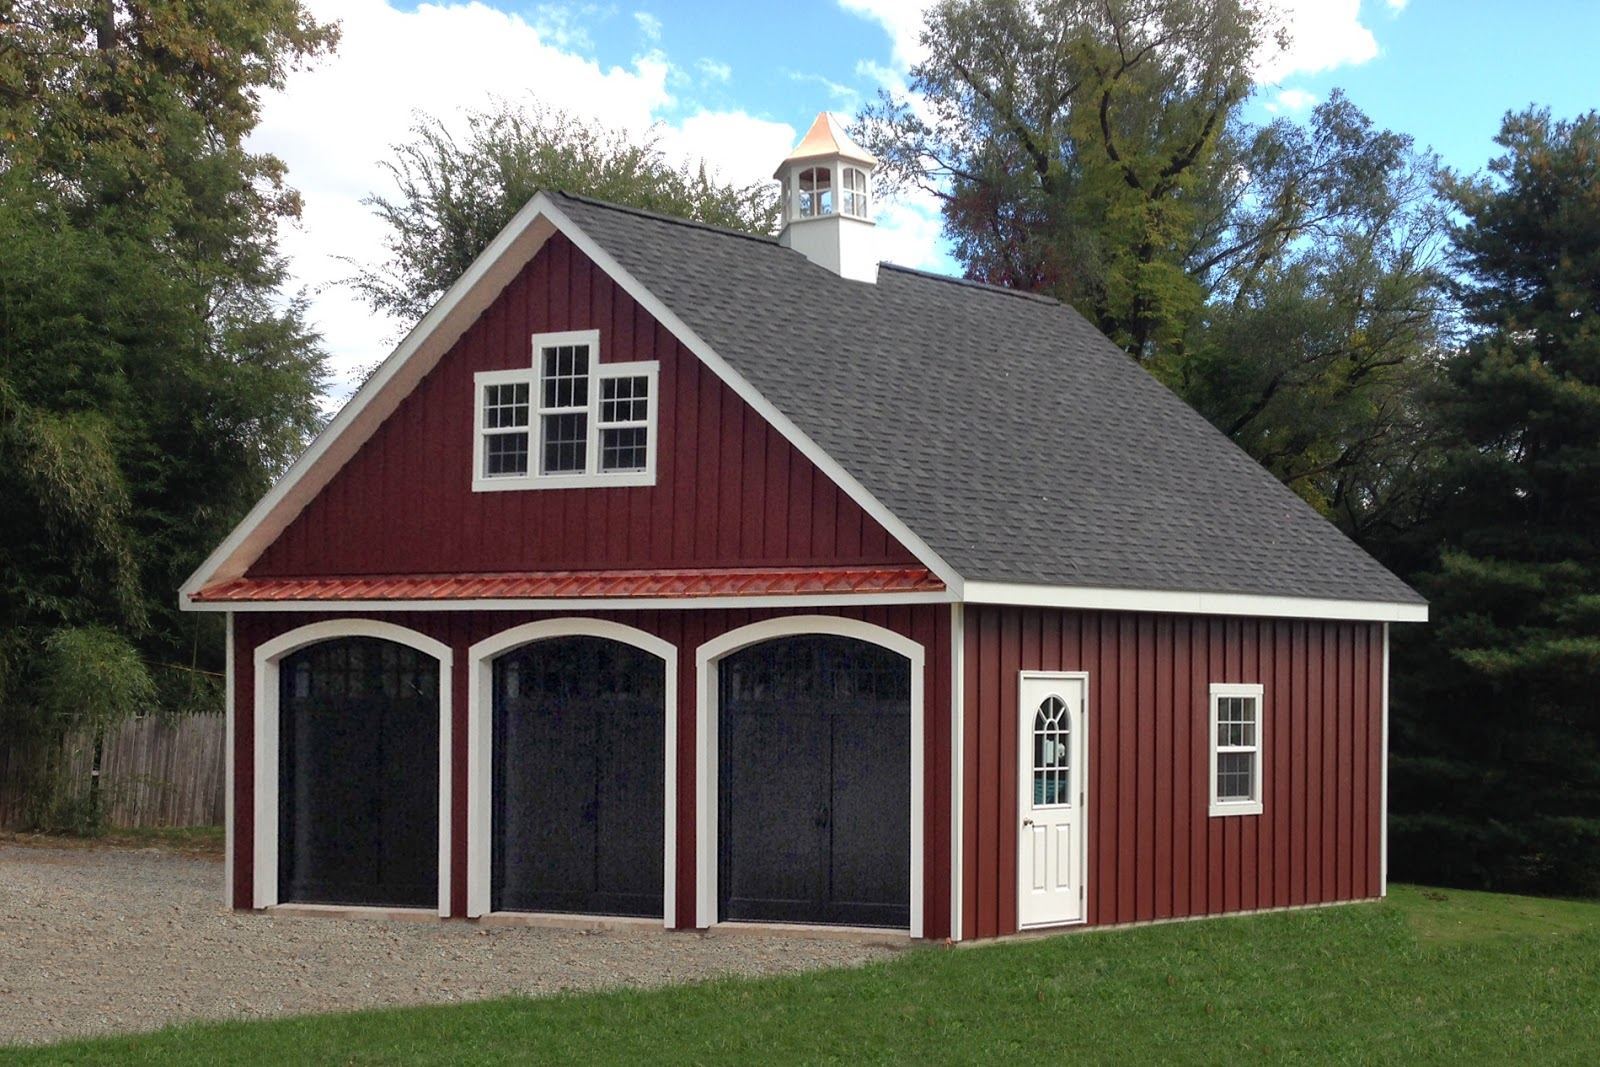 Detached 1 2 And 3 Car Garages In Nc: Prefab Car Garages For Sale In PA, NJ, NY, CT, DE, MD, VA